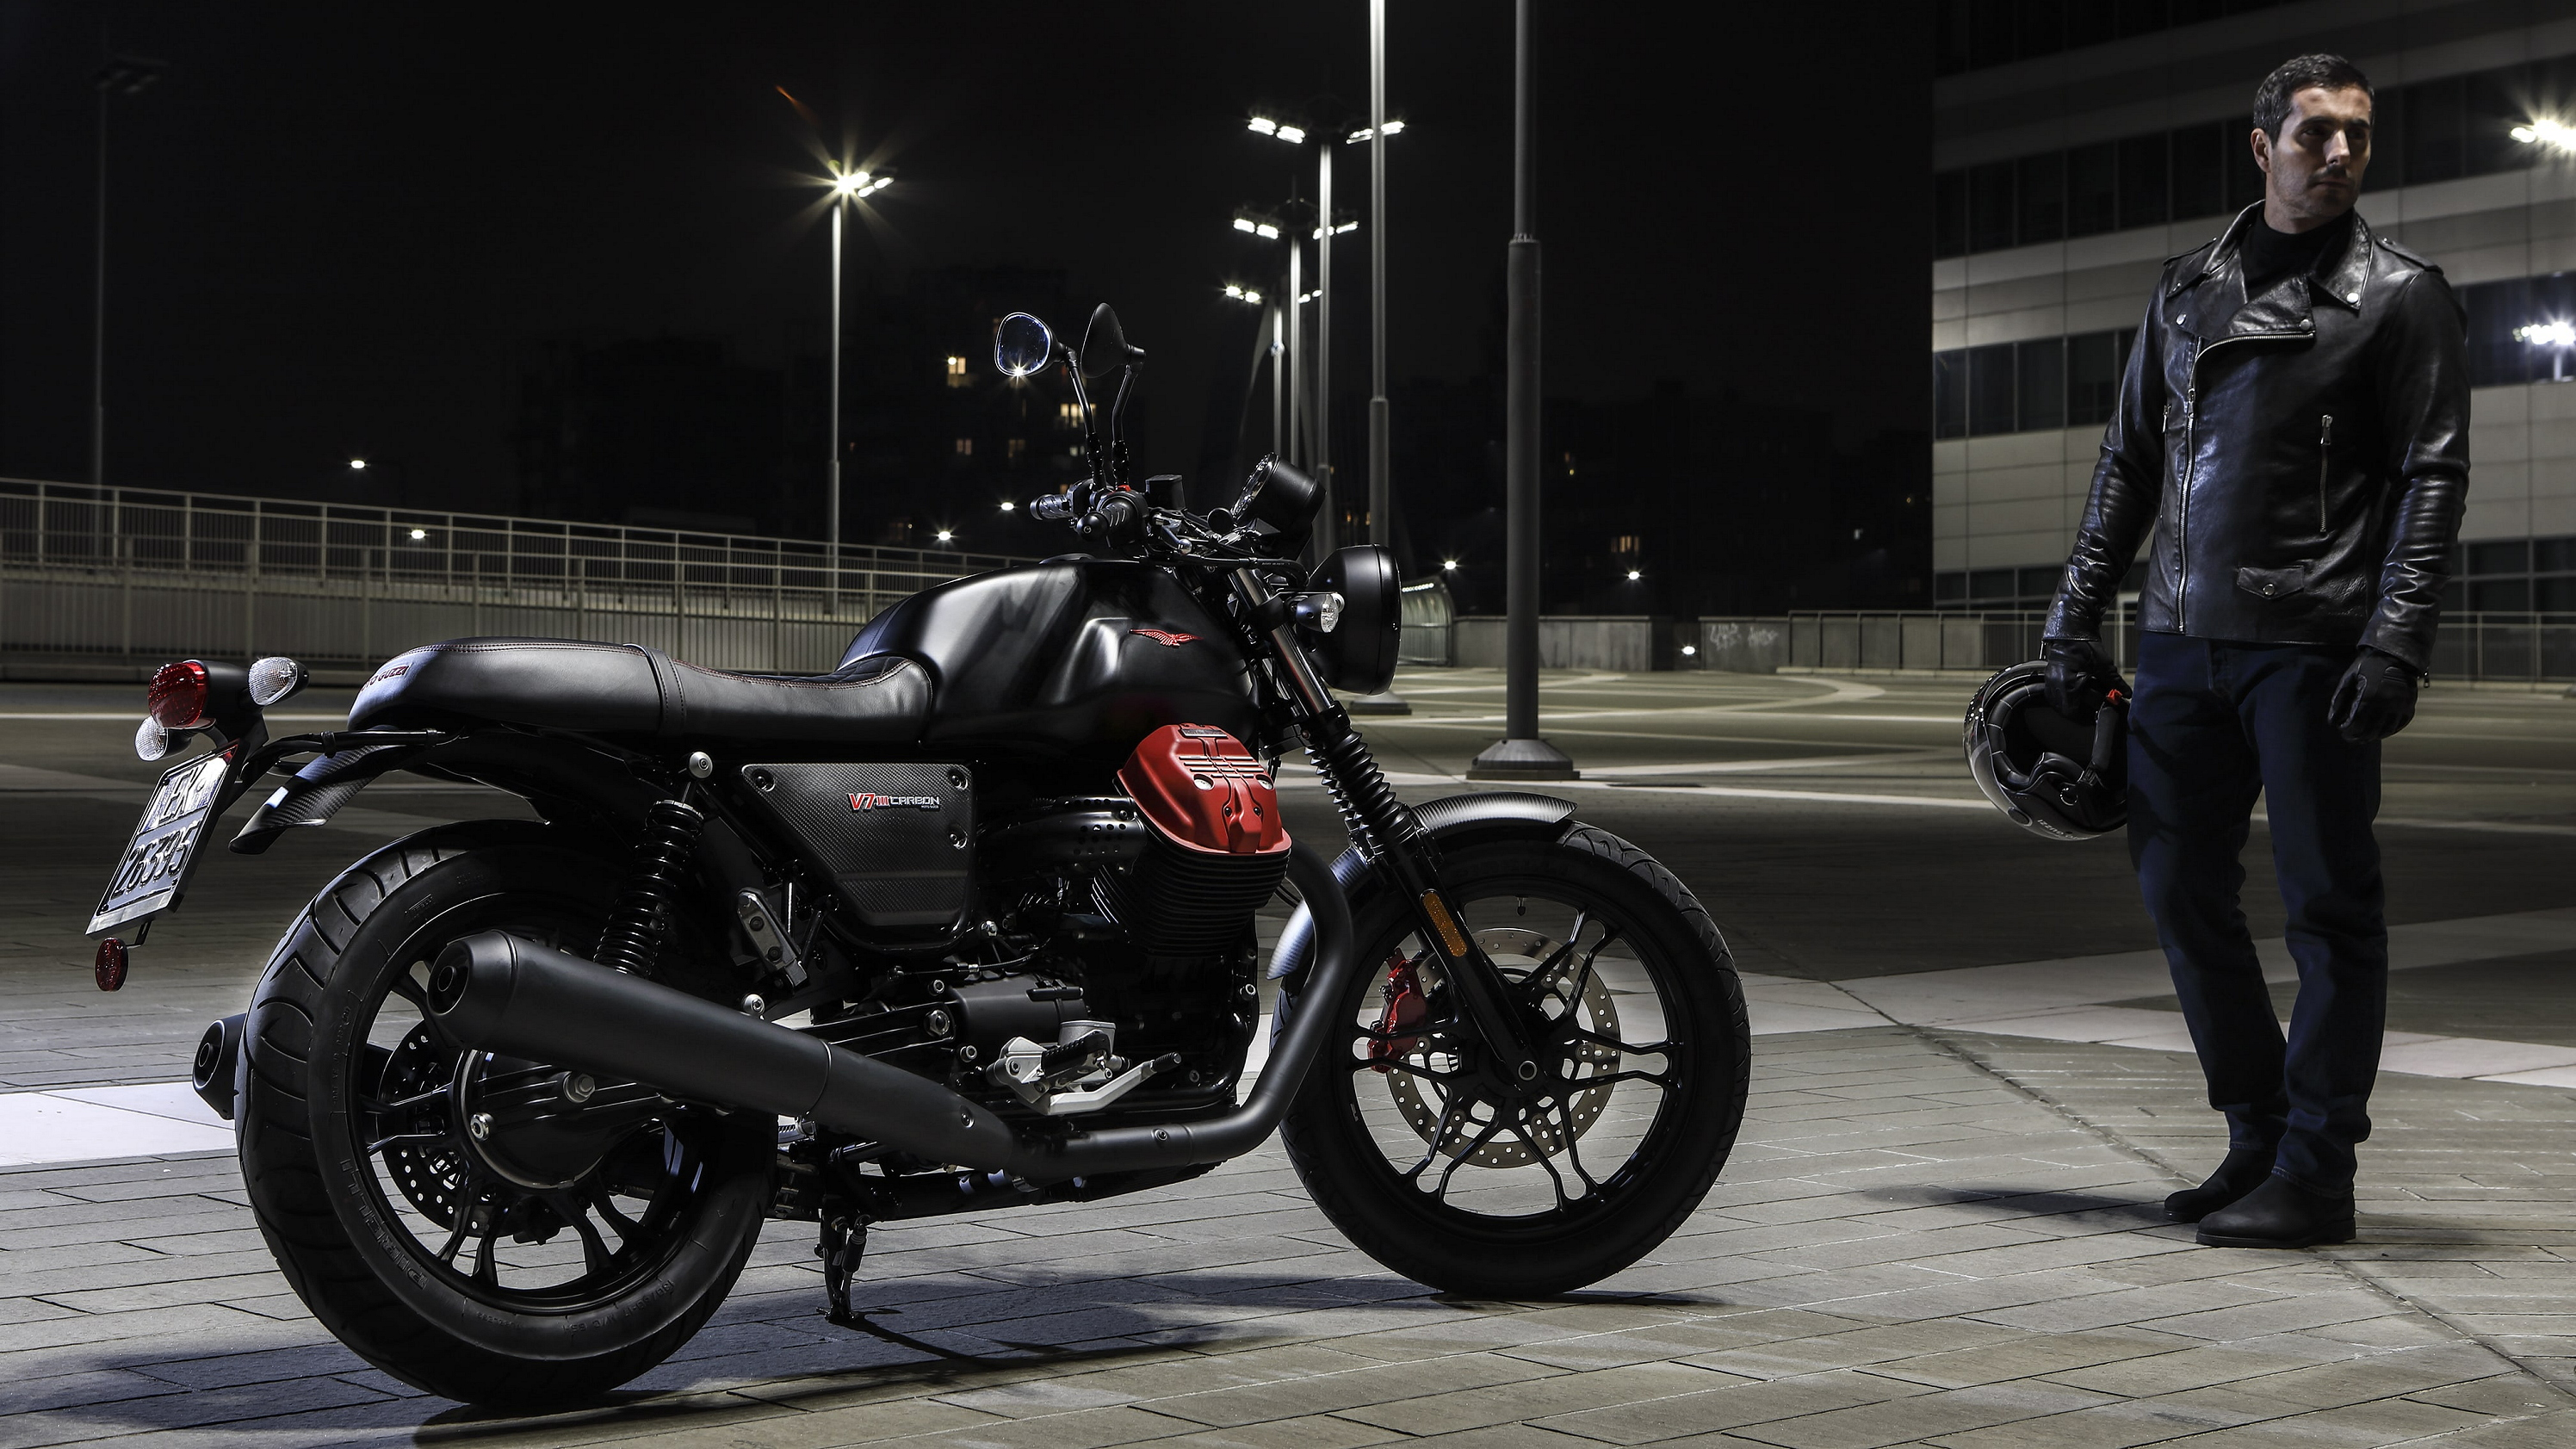 2018 Moto Guzzi V7 III Carbon Pictures, Photos, Wallpapers